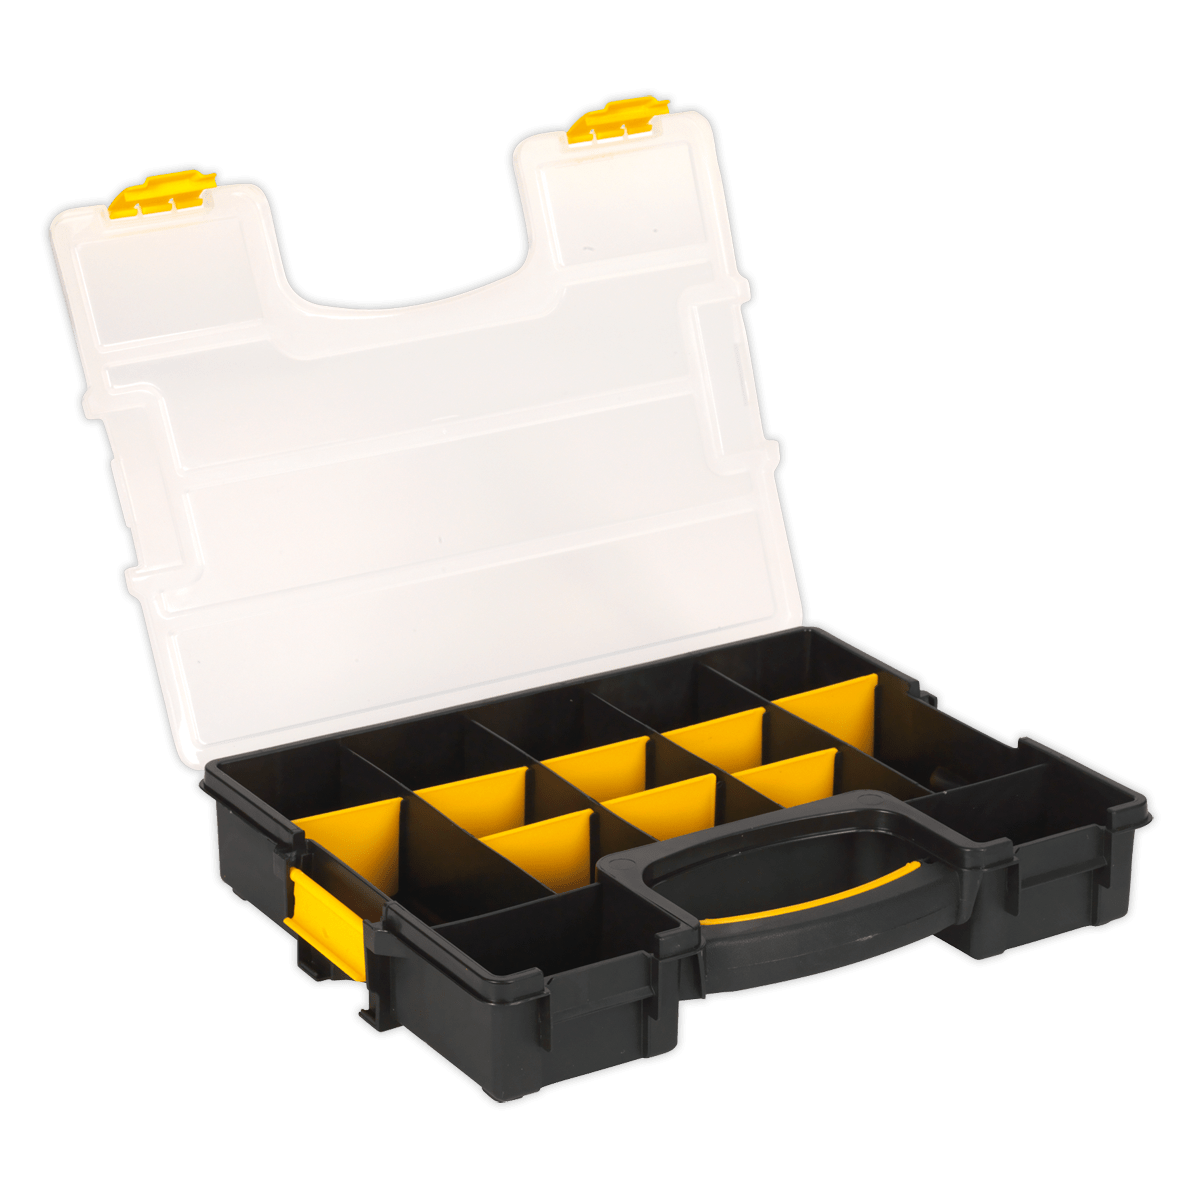 Sealey Parts Storage Case with Removable Compartments - Stackable APAS15A